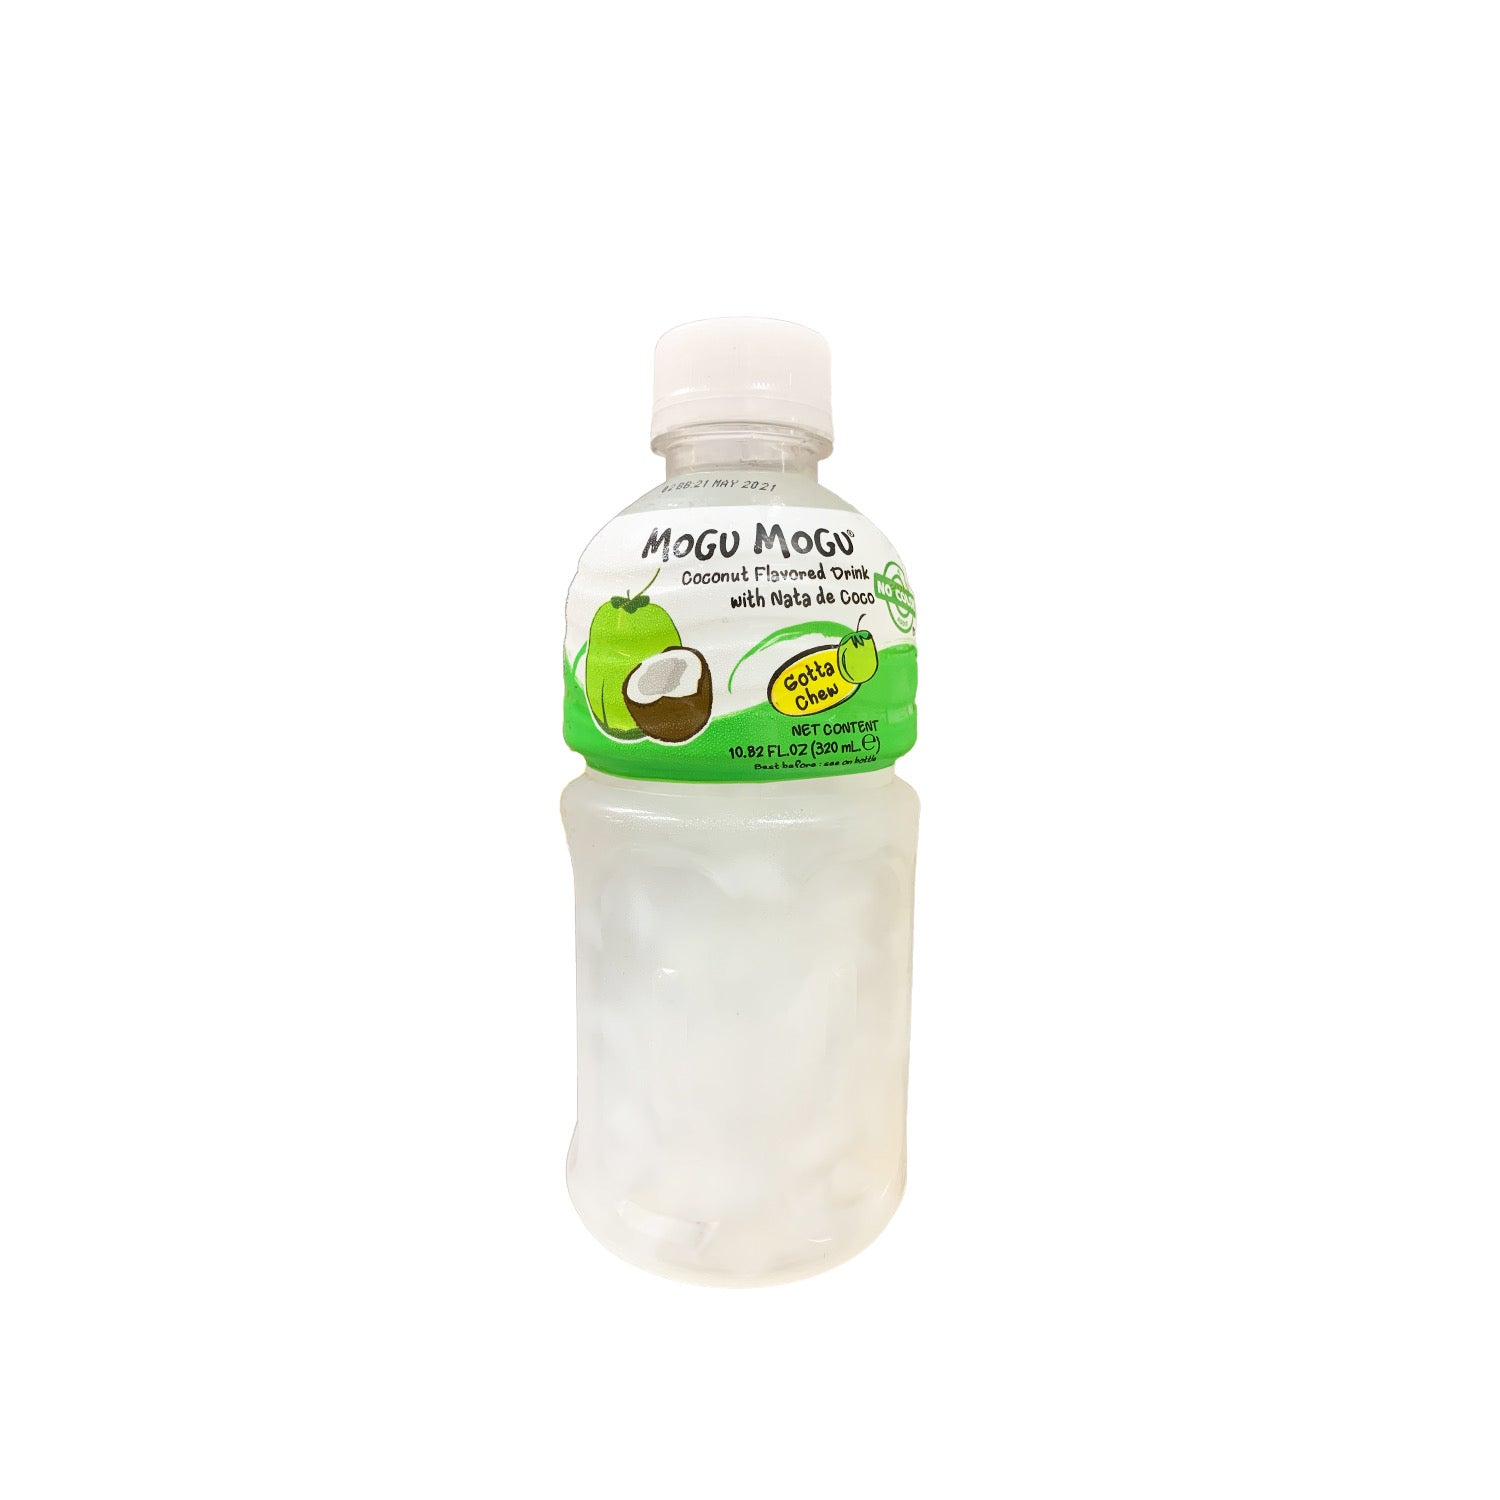 MoGu MoGu Coconut Juice 10.82oz